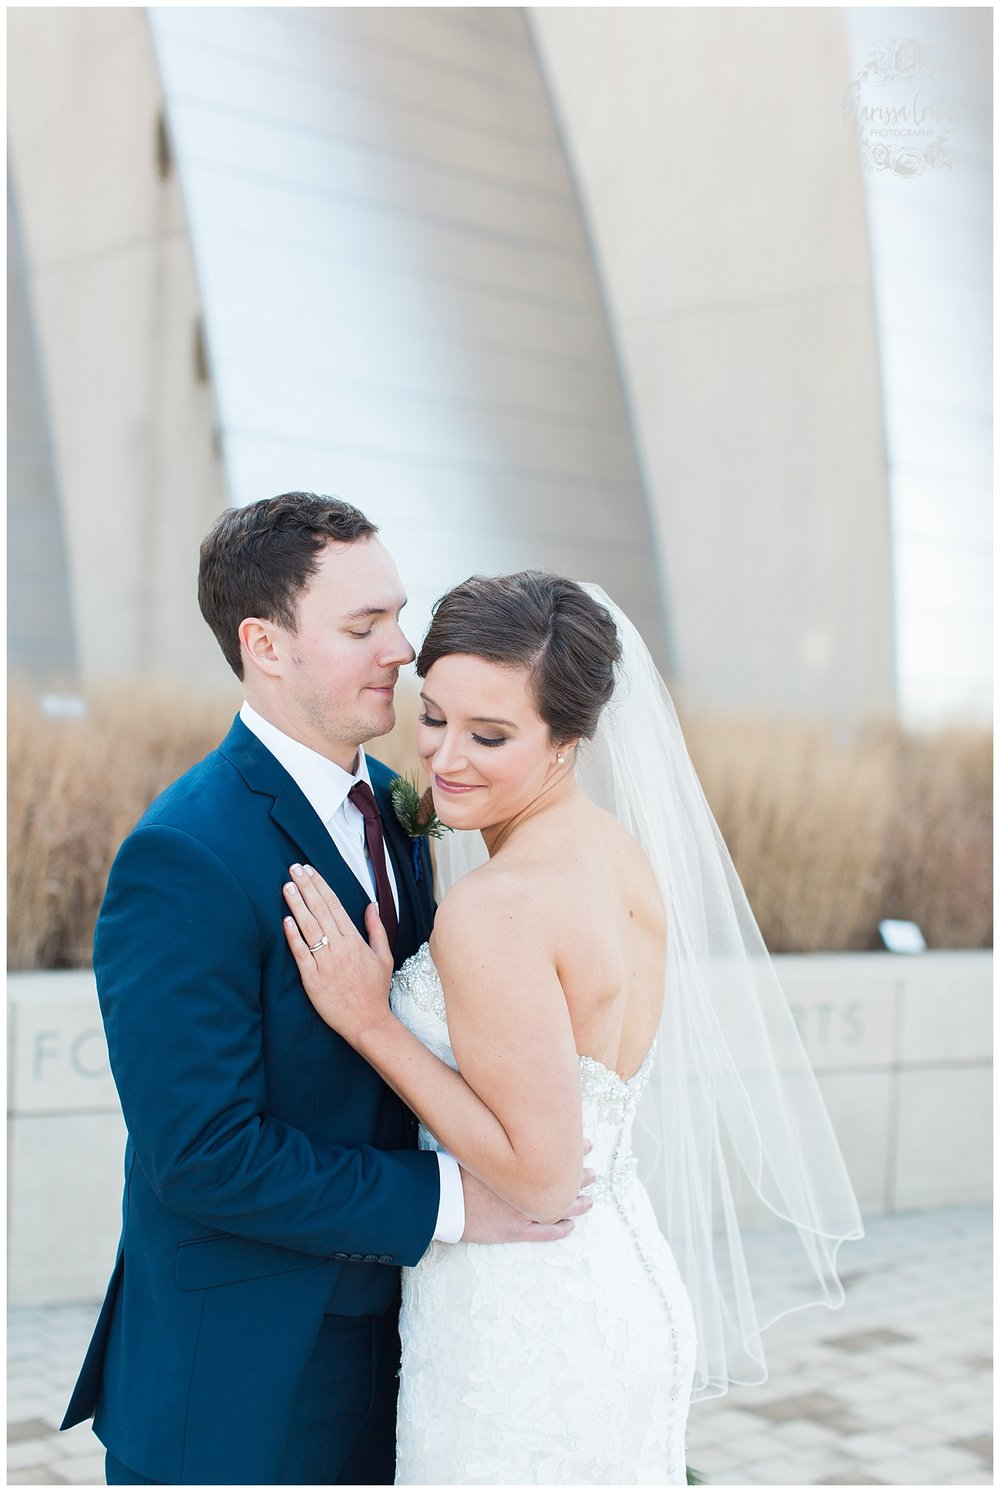 Kelsey & Cory | The Venue at Willow Creek Wedding | Kauffman Performing Arts | Marissa Cribbs Photography | KC Wedding Photographer_0331.jpg